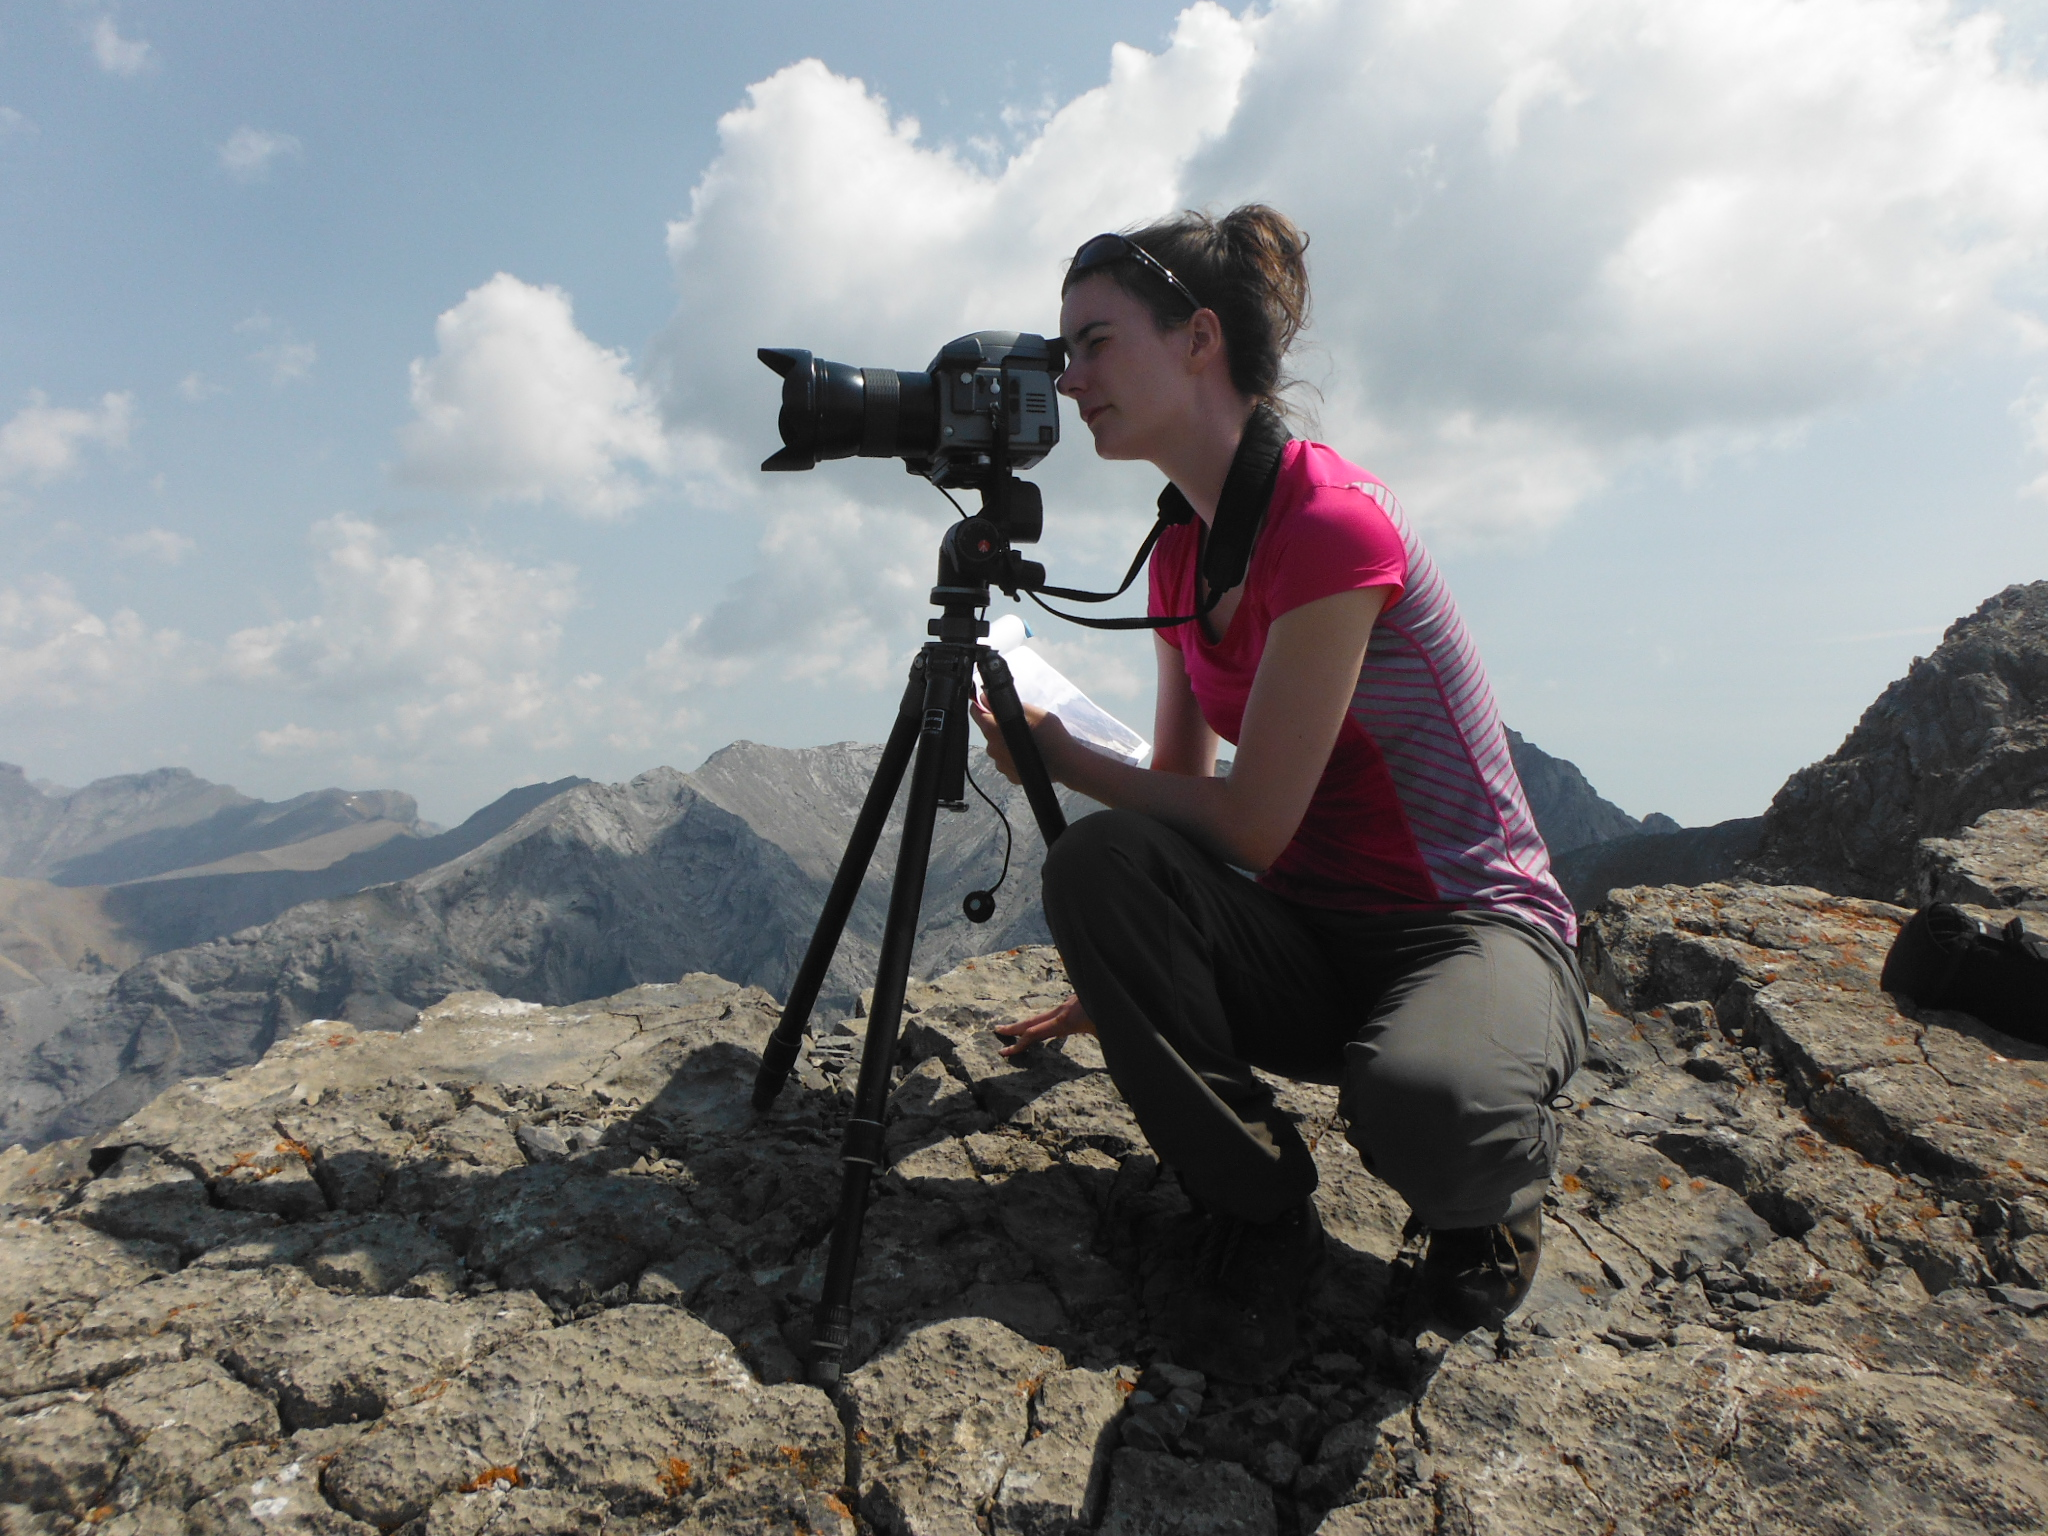 Tanya Taggart-Hodge conducting third views on Mt.Grotto, which will enable a comparative analysis of the Bow River from three temporal sets of photographs